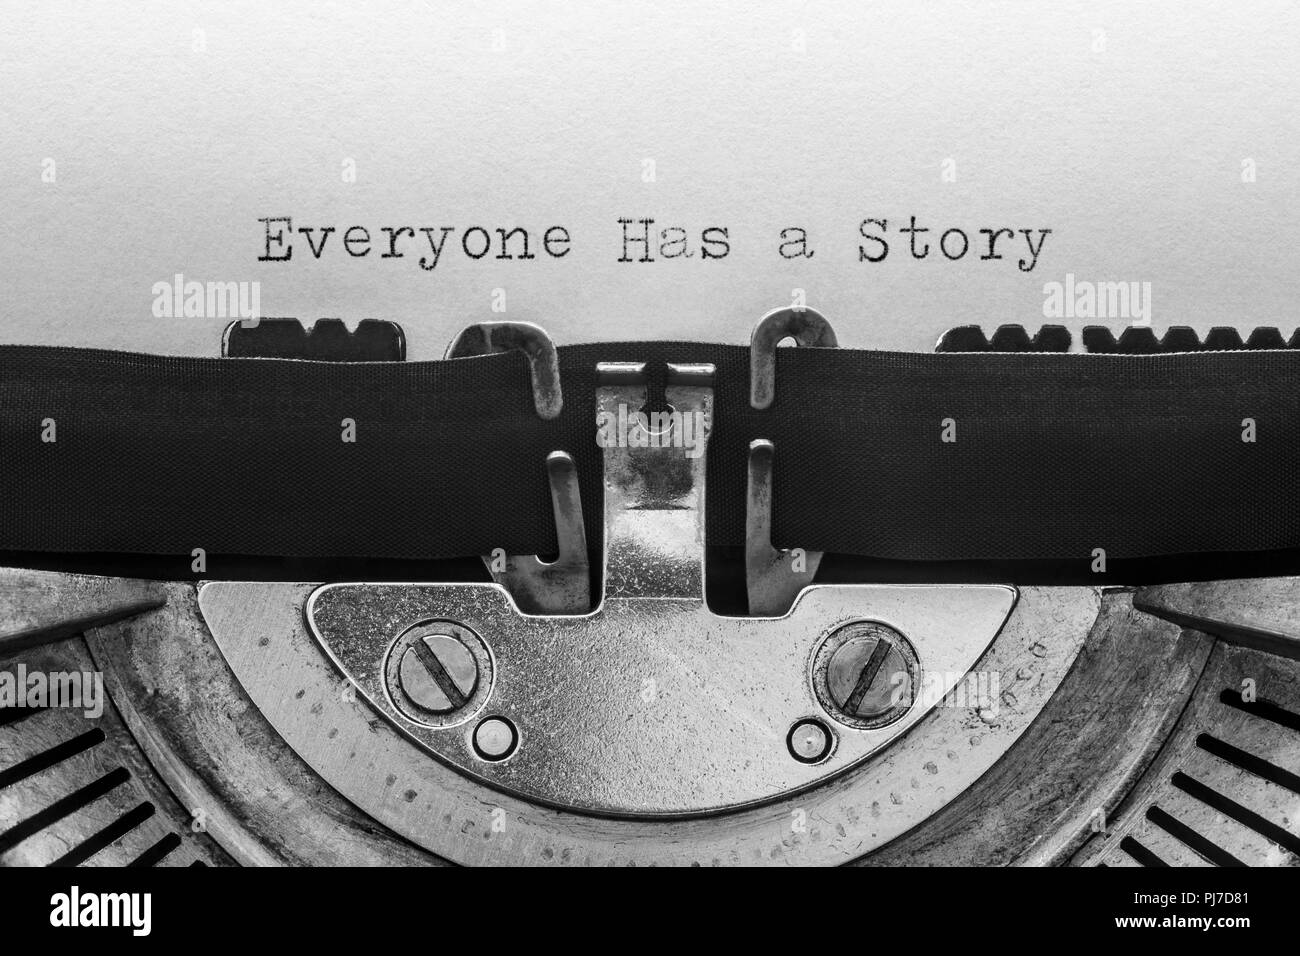 Everyone has a story typed on a vintage typewriter - Stock Image